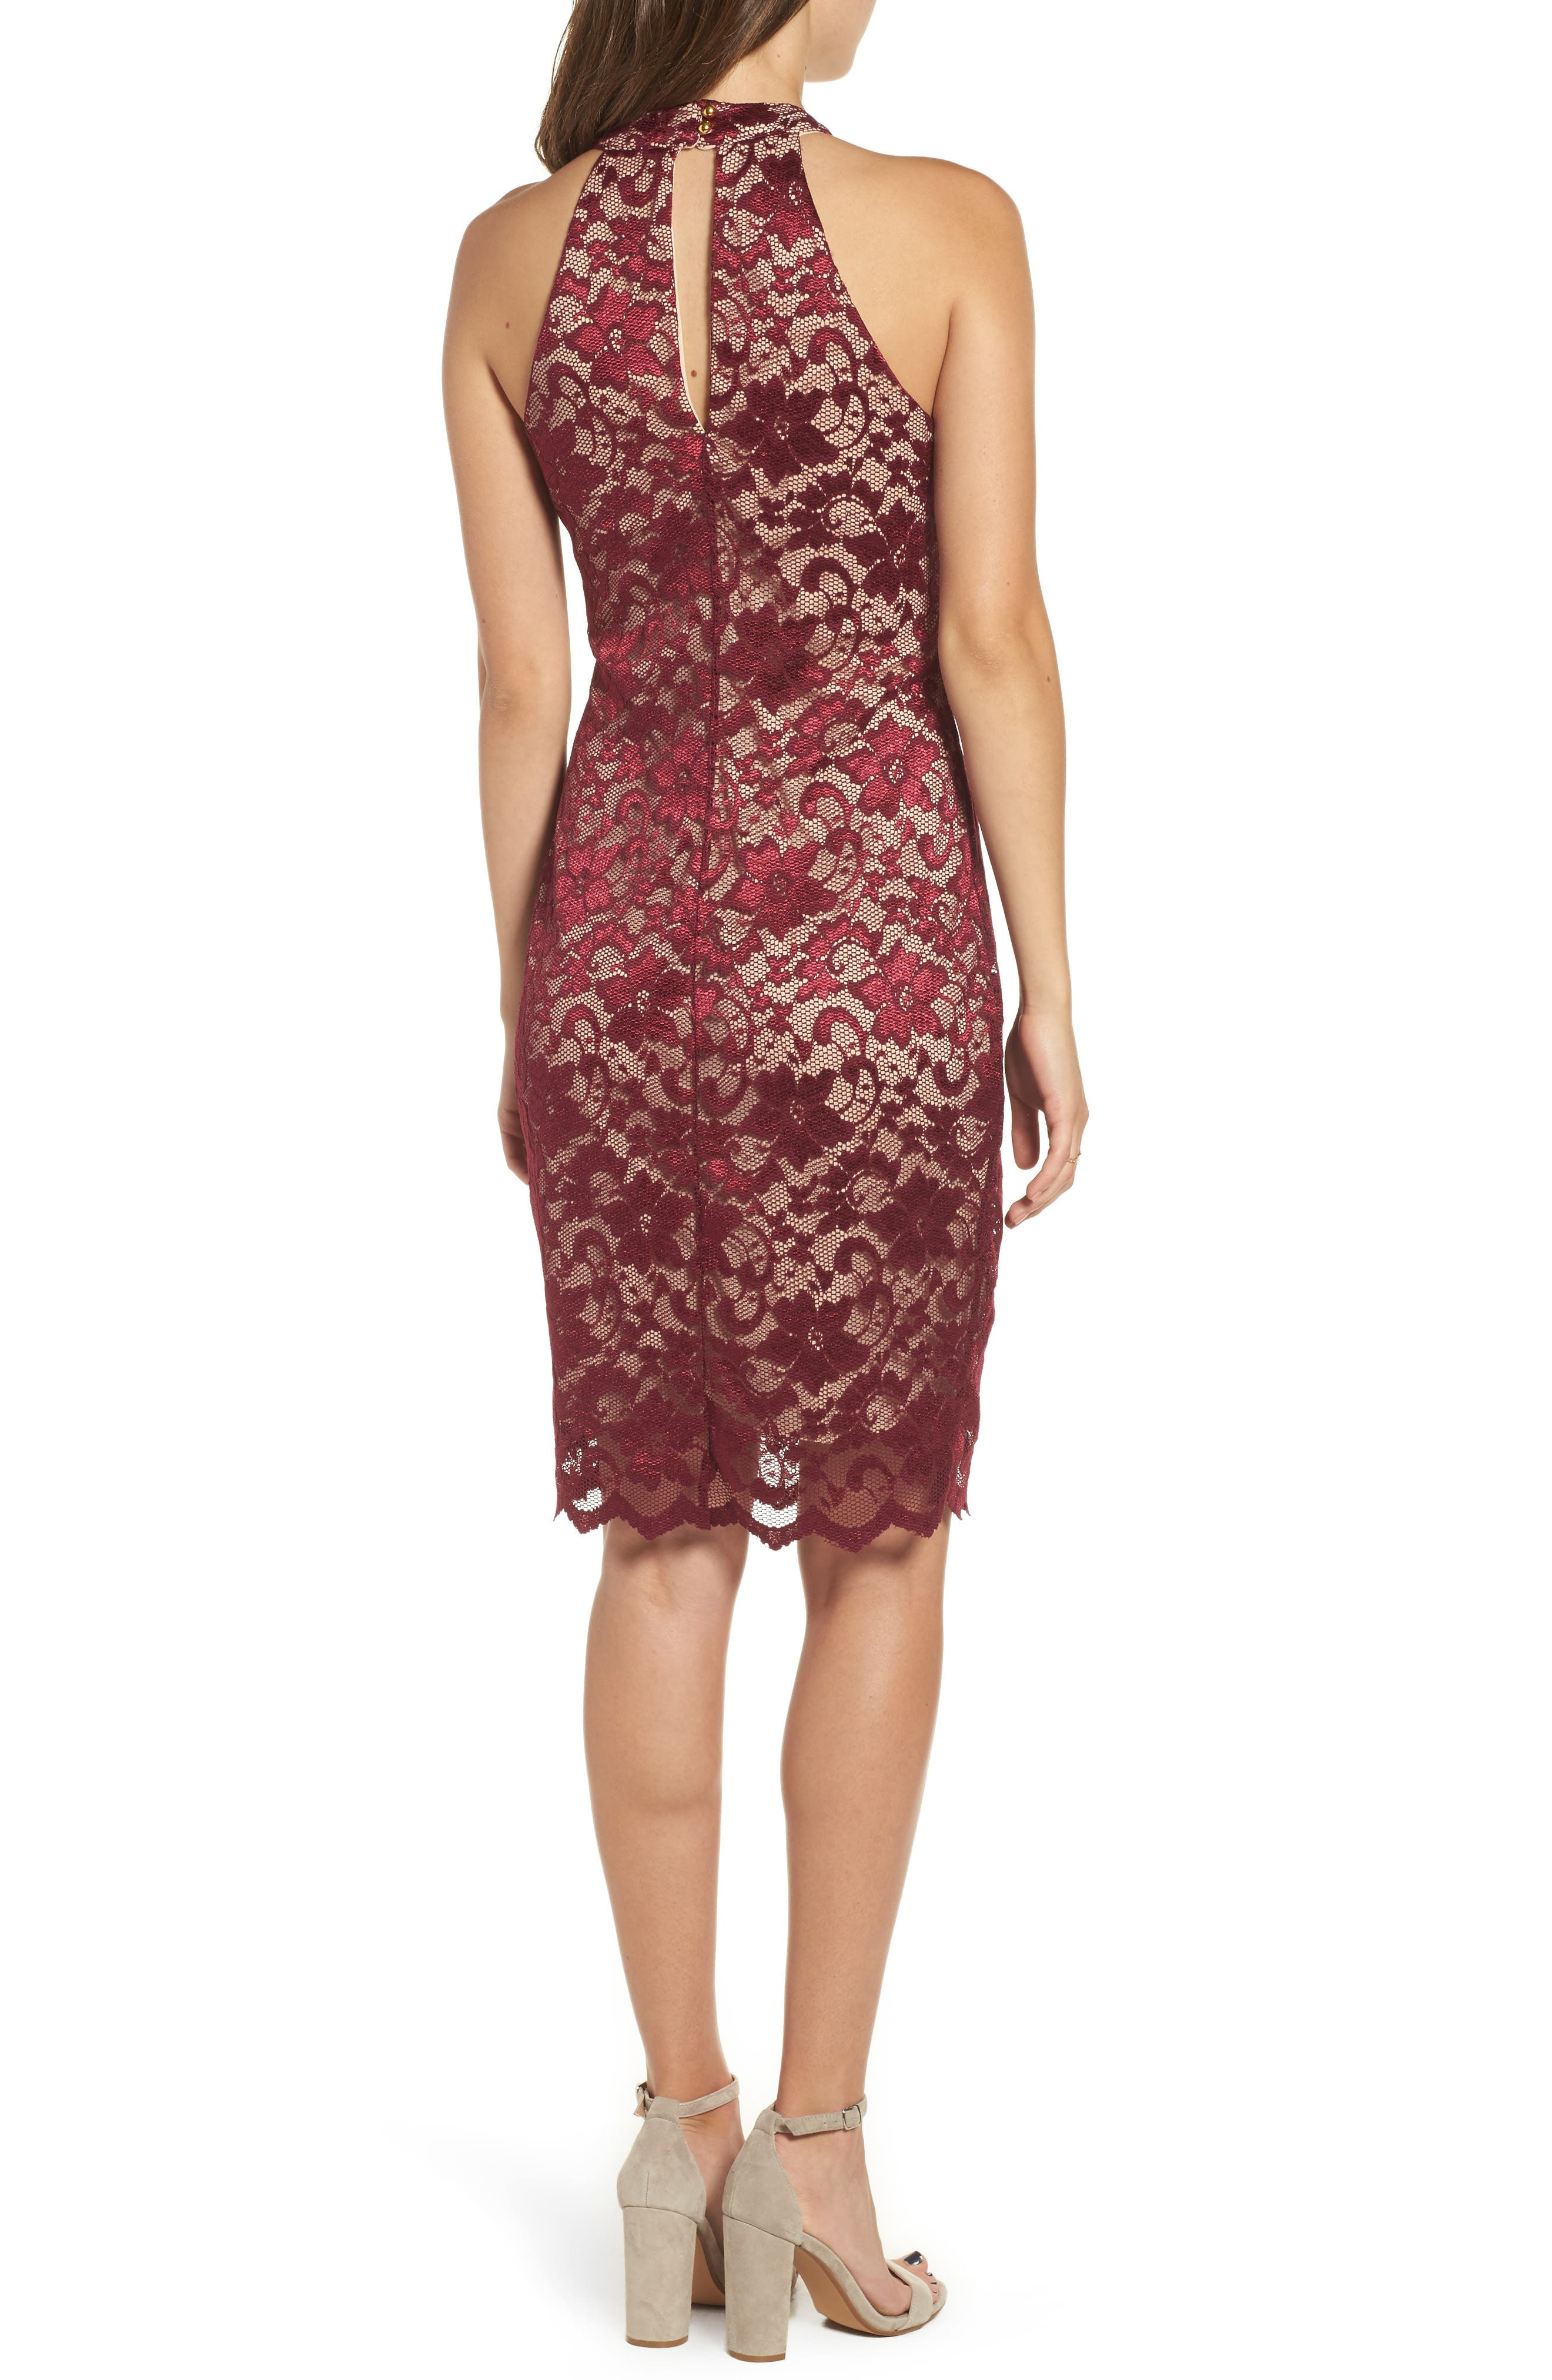 Love Nickie Lew Lace Choker Body Con Dress,                             Alternate thumbnail 2, color,                             Wine/ Nude